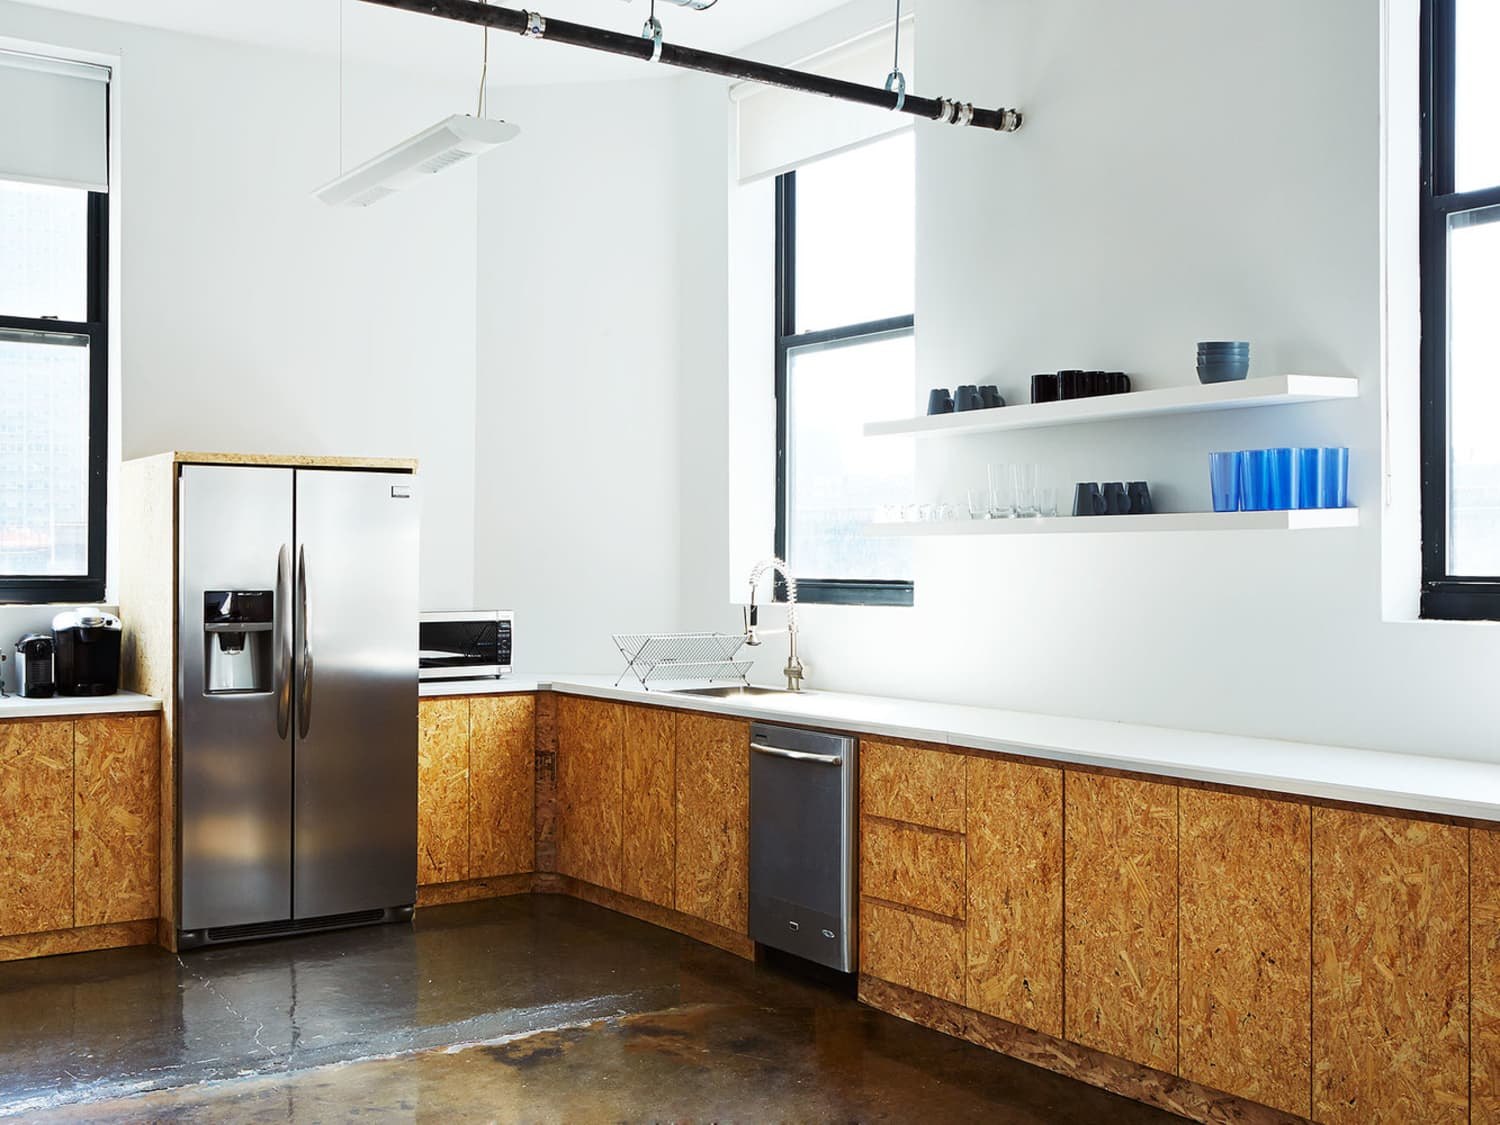 Formica Kitchen Countertops Are Worth a Second Look